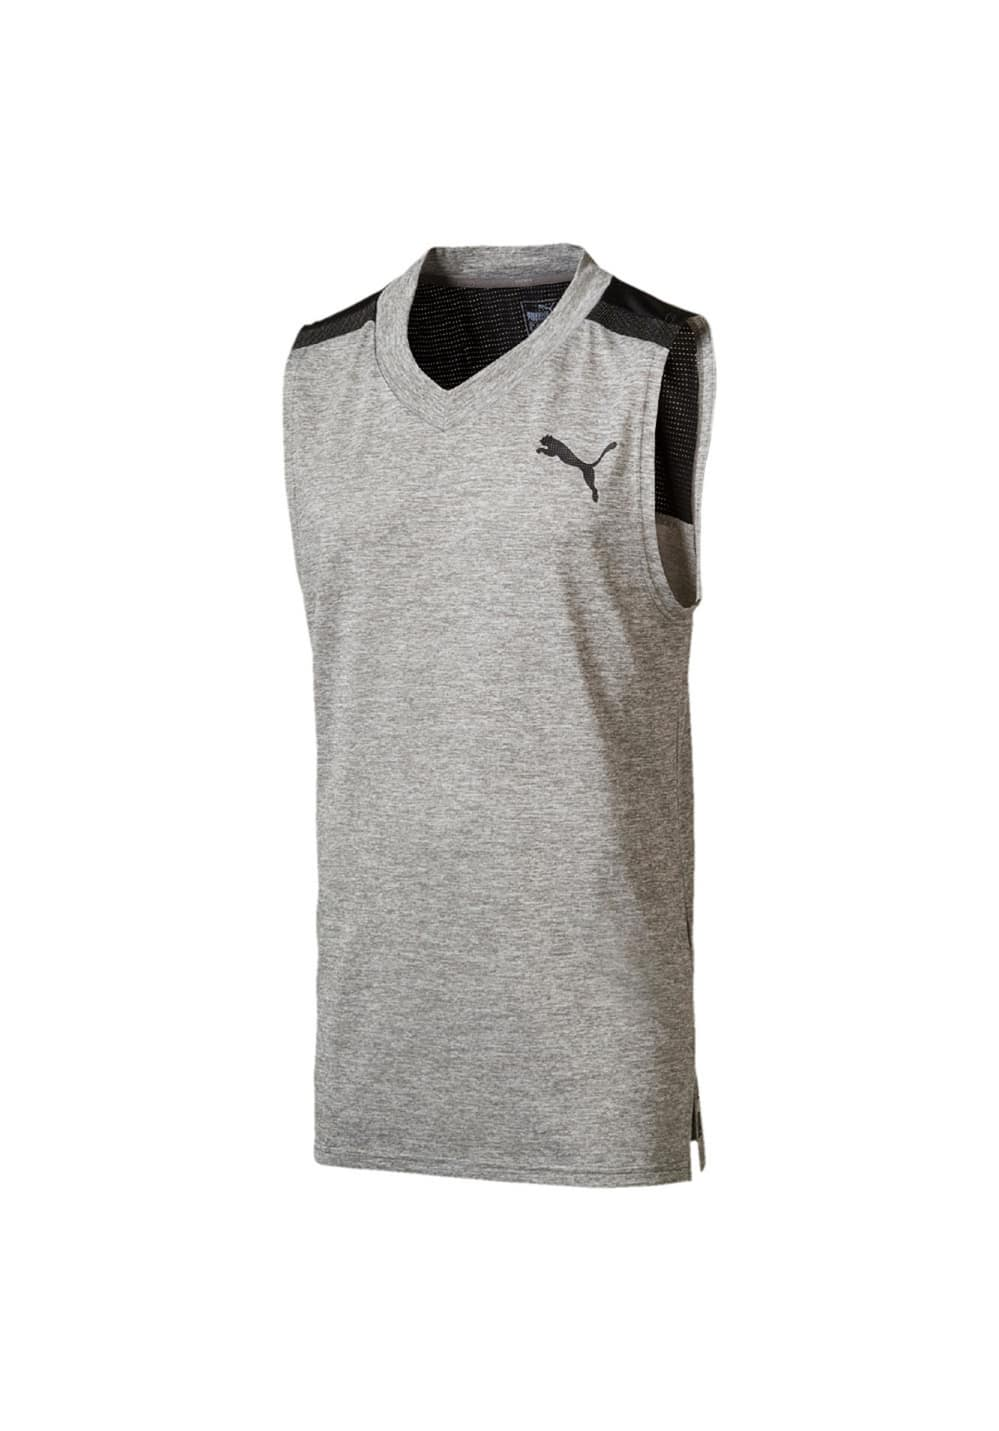 4bf1a18531aa37 Puma BND Tech SLVS Tee - Running tops for Men - Grey | 21RUN